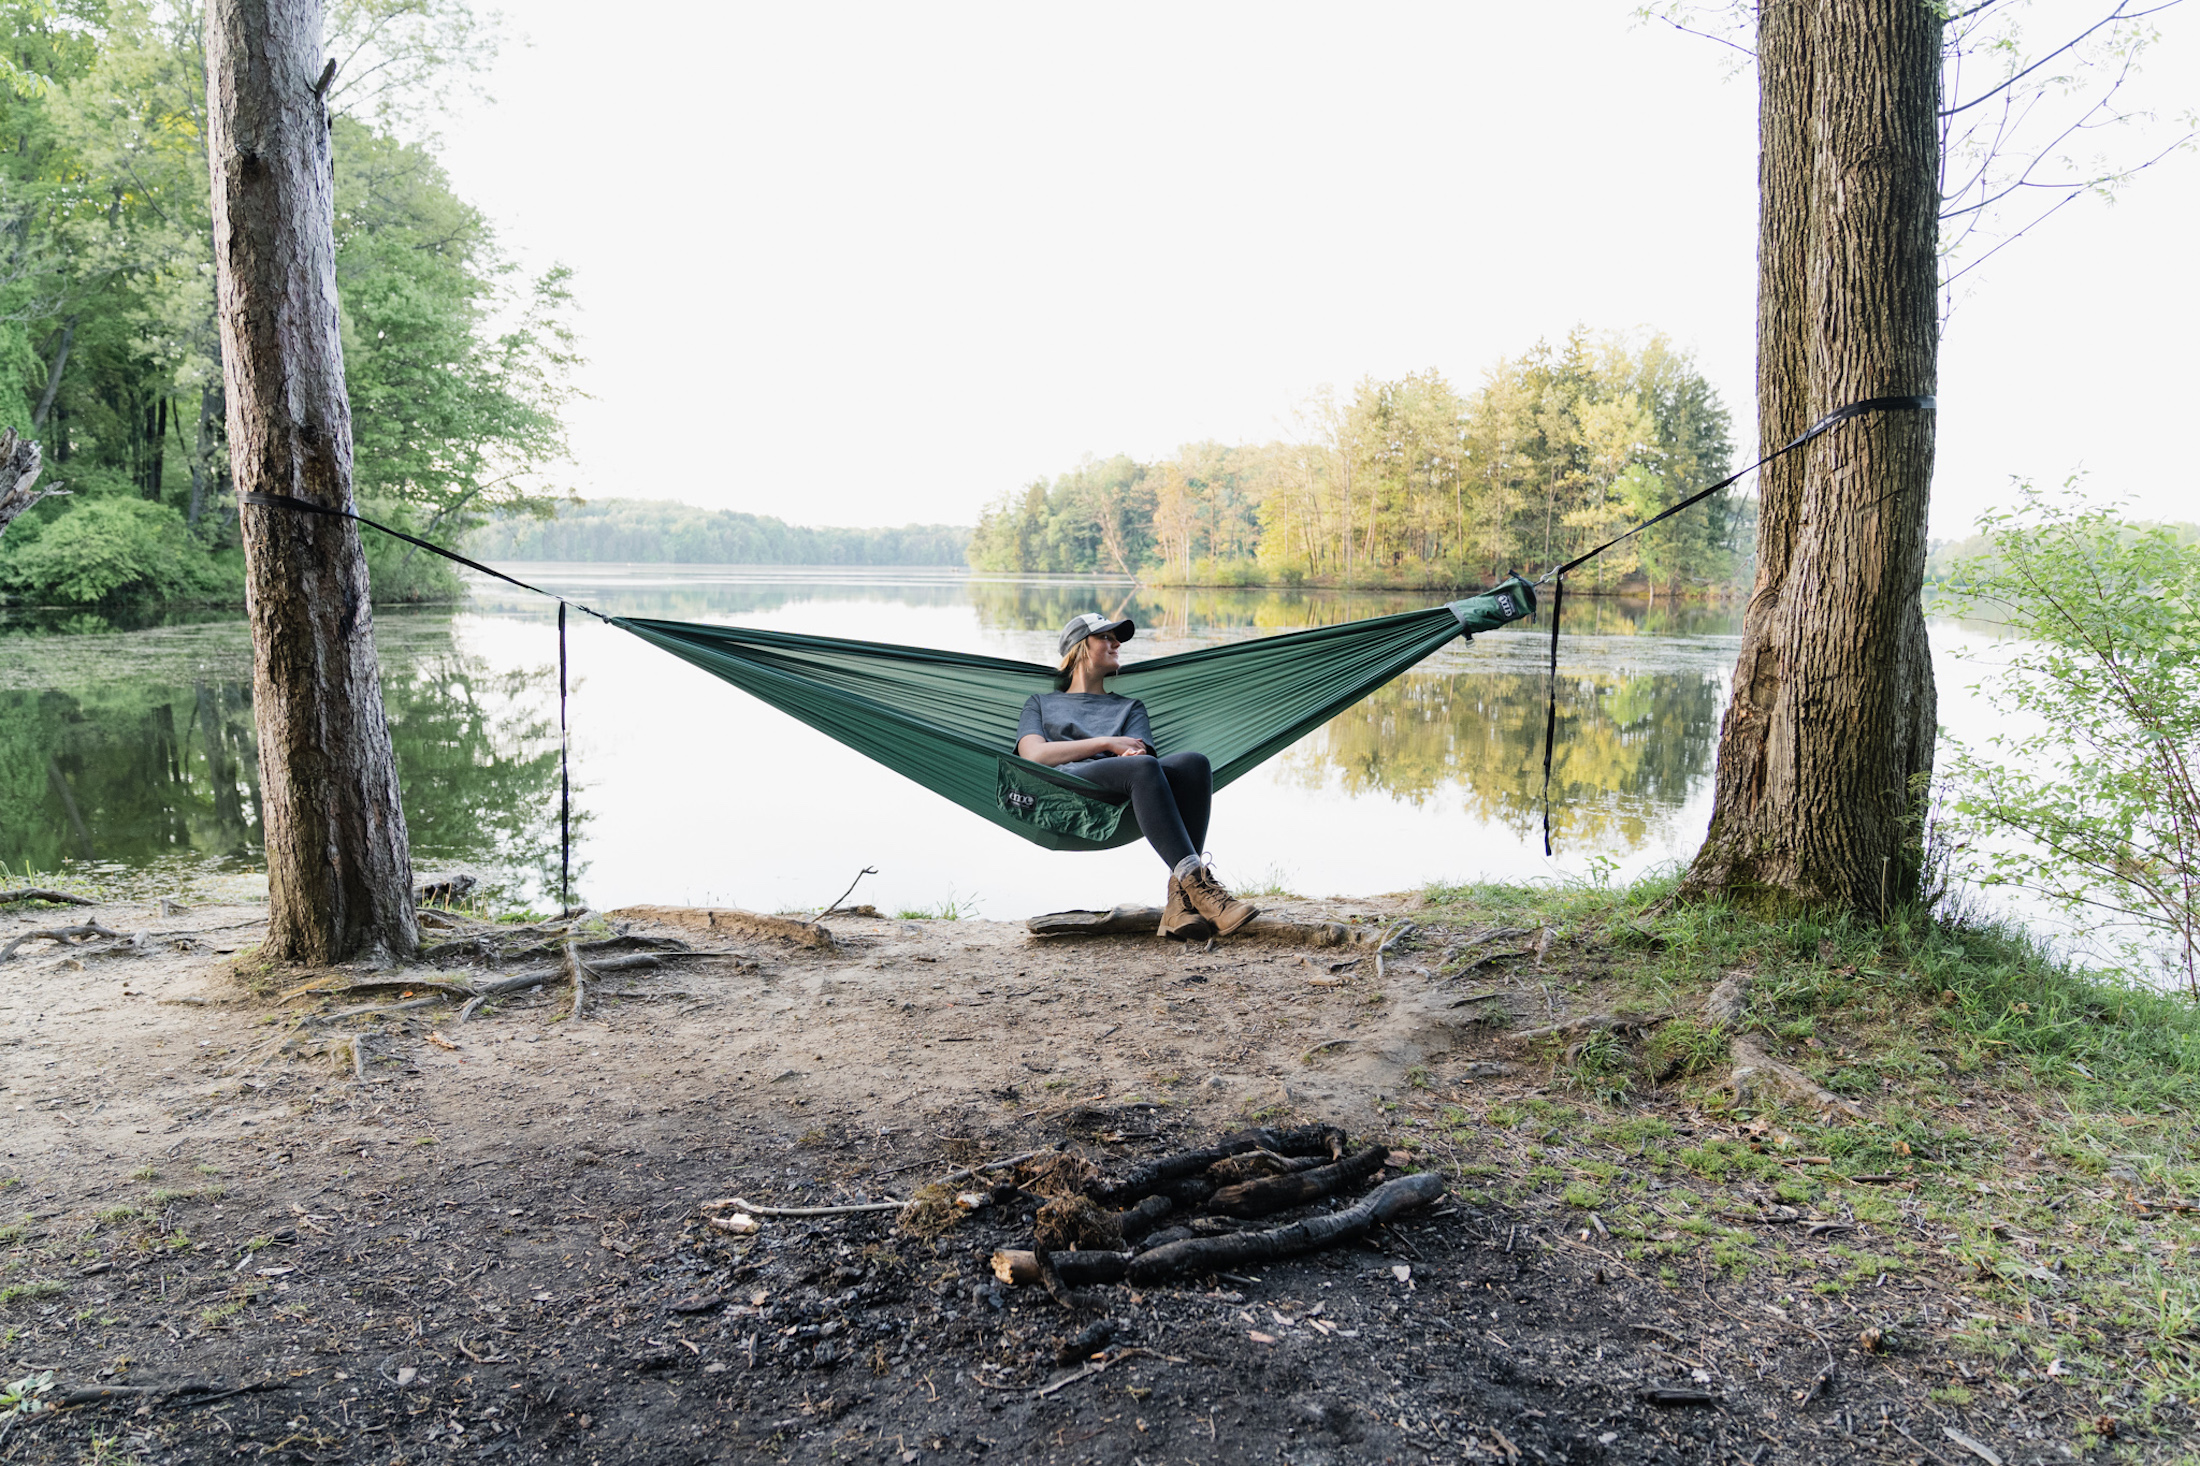 person in ball cap lounging in TechNest hammock by lake